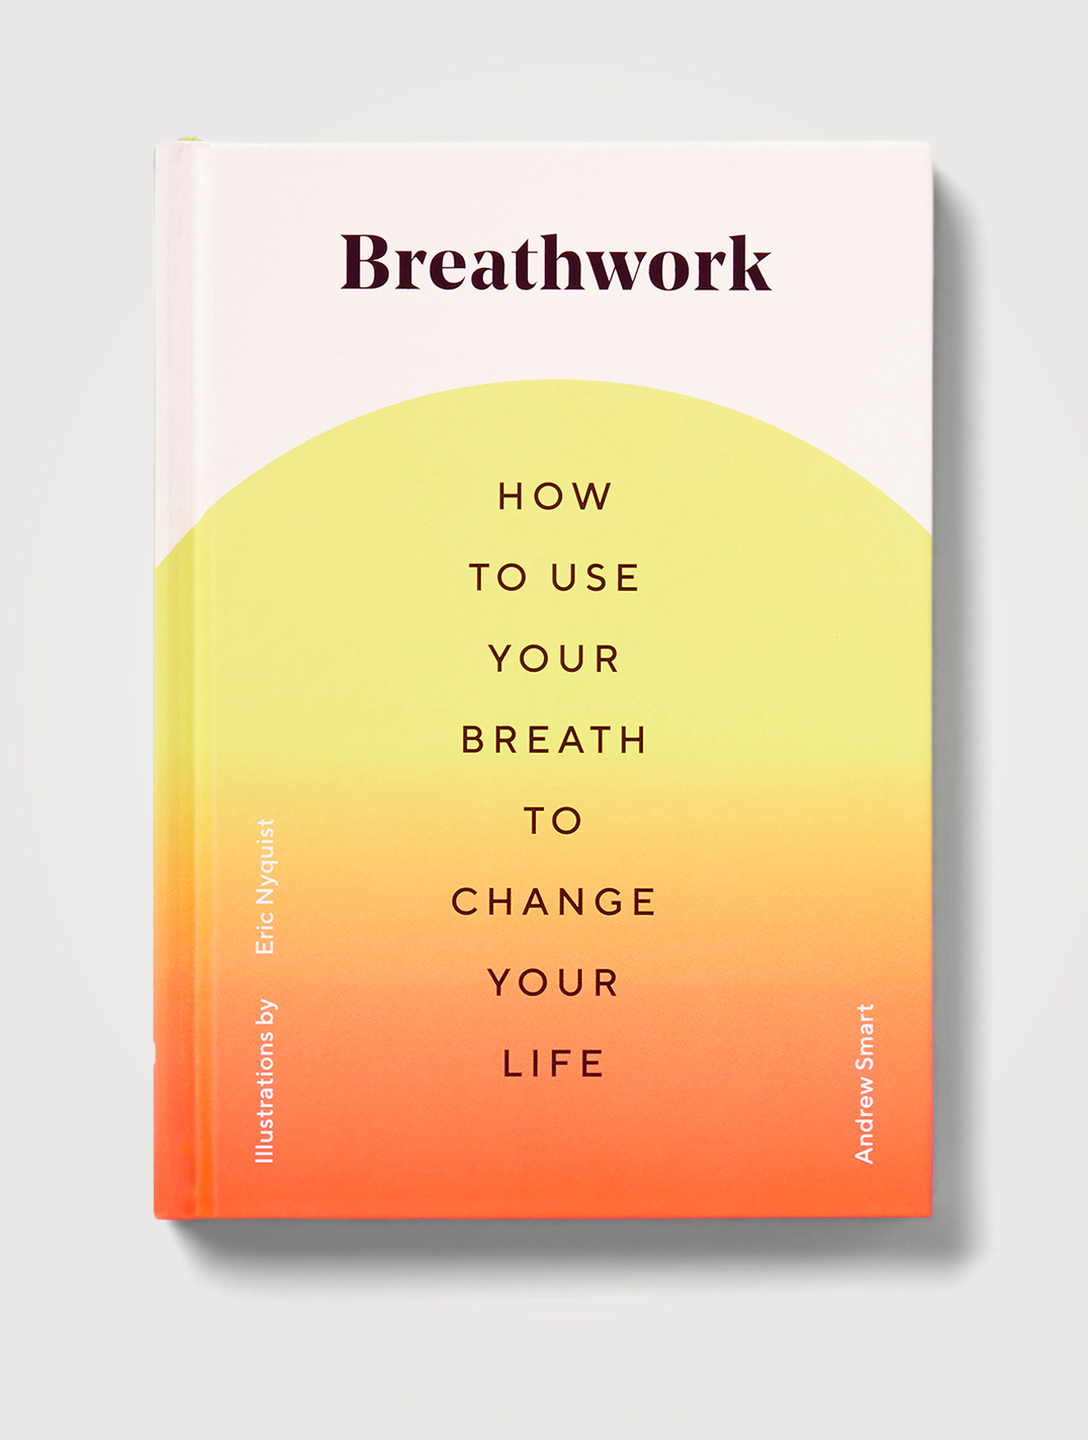 RAINCOAST Breathwork: How to Use Your Breath to Change Your Life Cadeaux et produits gourmet